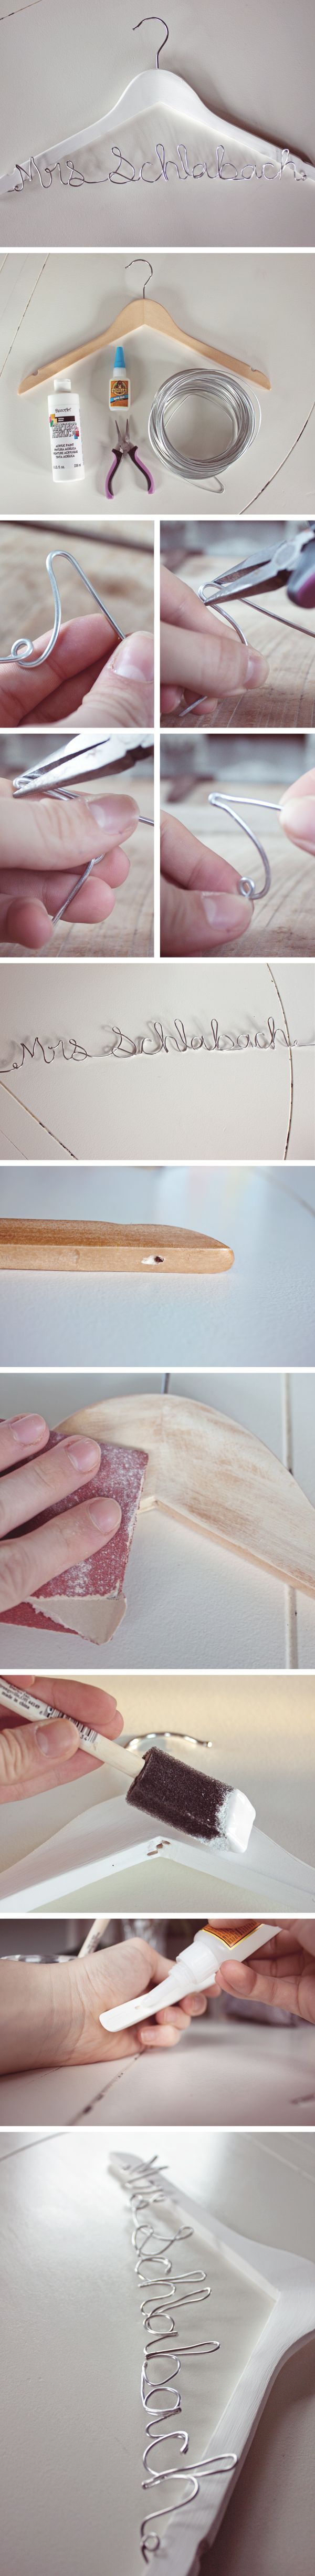 Will use this tut to make a jewelry hanger.  How to make a custom hanger with bride's last name. DIY tutorial from O Hi, O Love